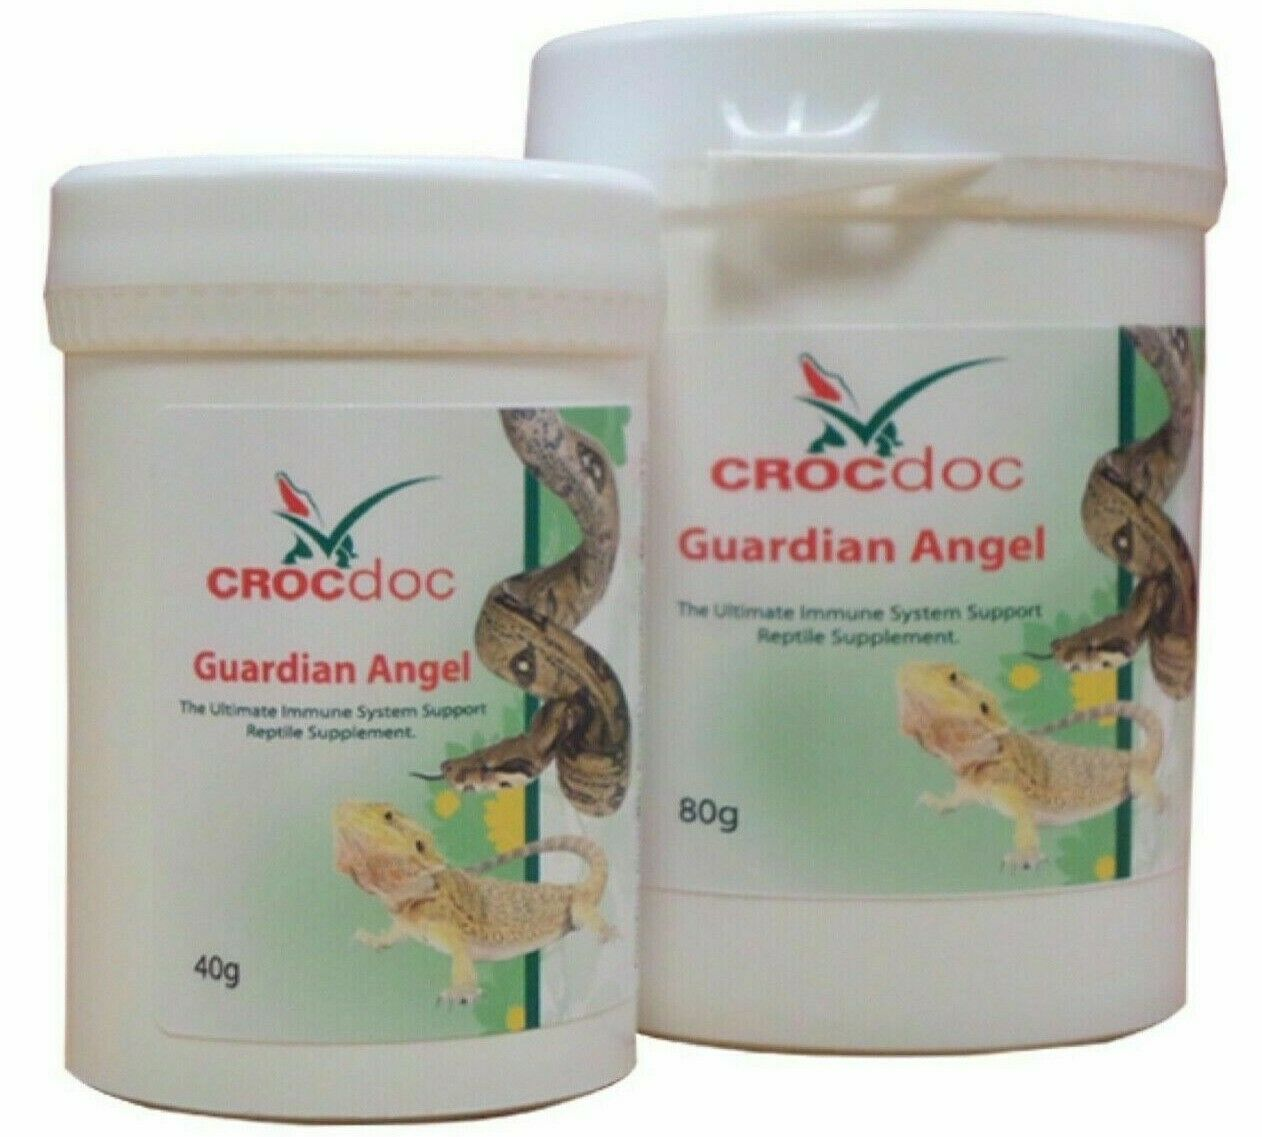 CROCdoc Guardian Angel For Sick Stressed Reptiles Emergancy First Aid